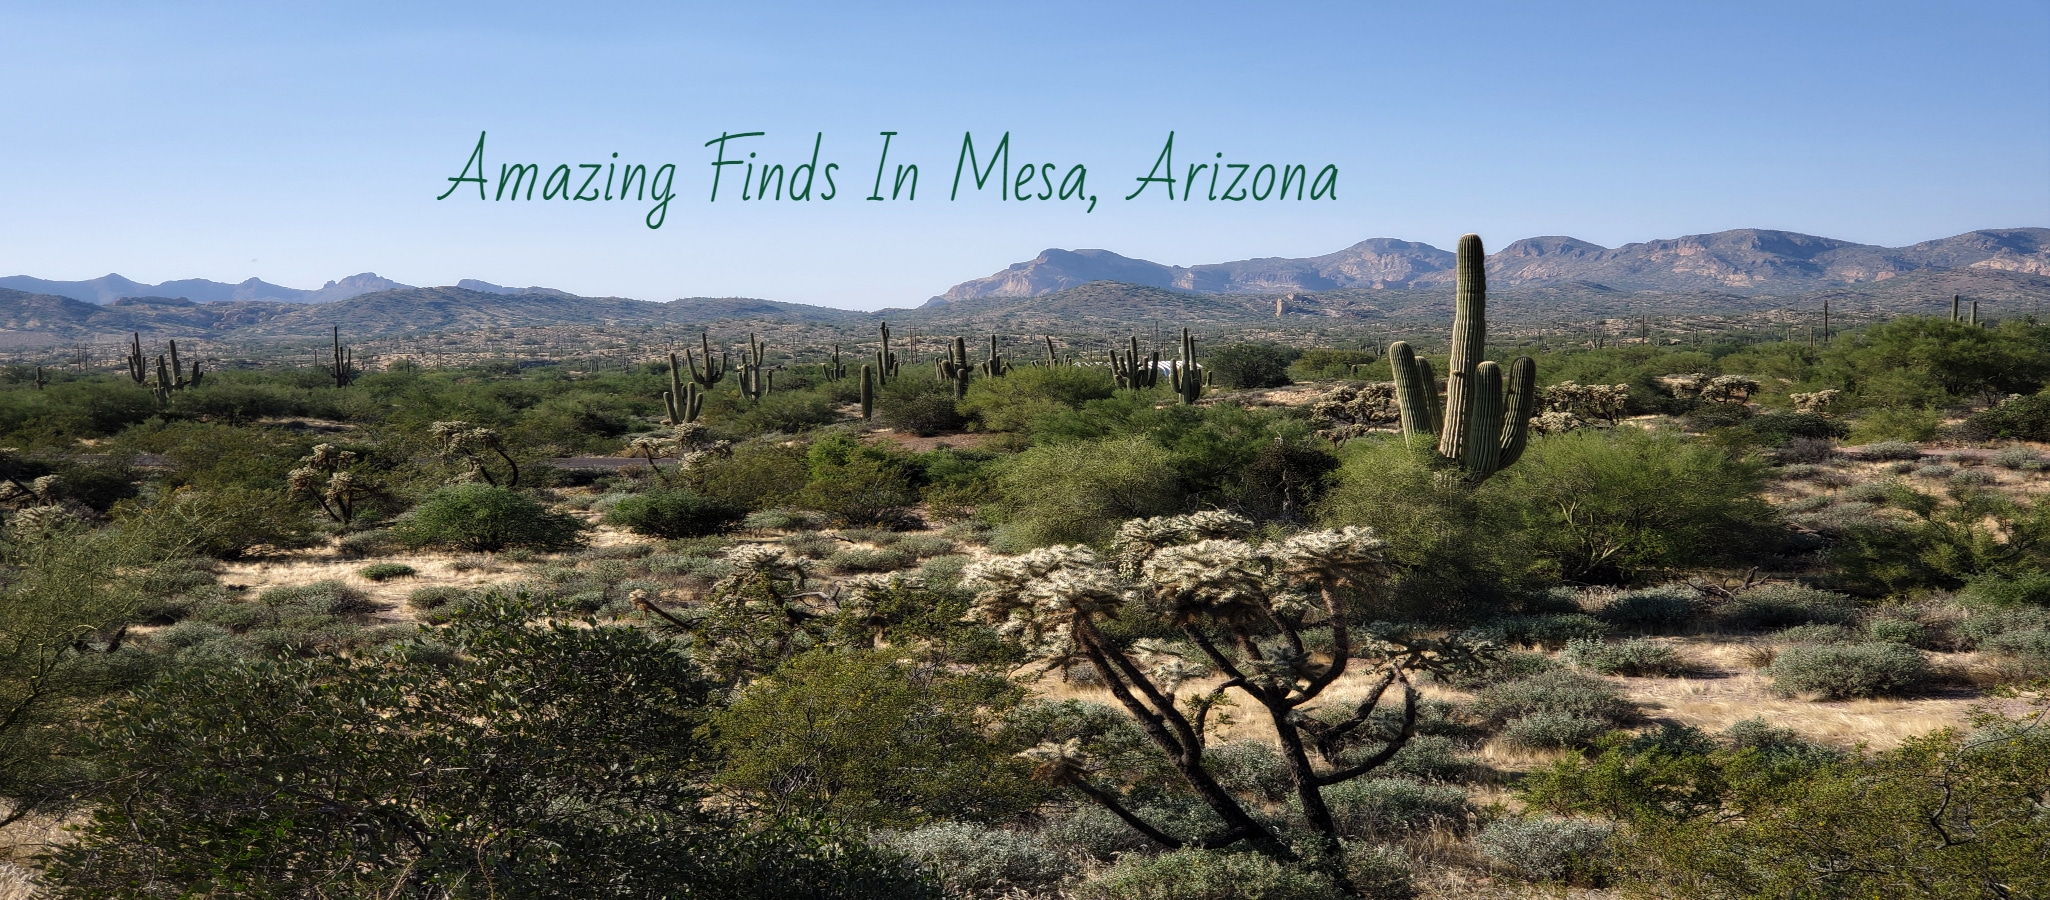 Mesa, Arizona- There's A Whole Lot Going On